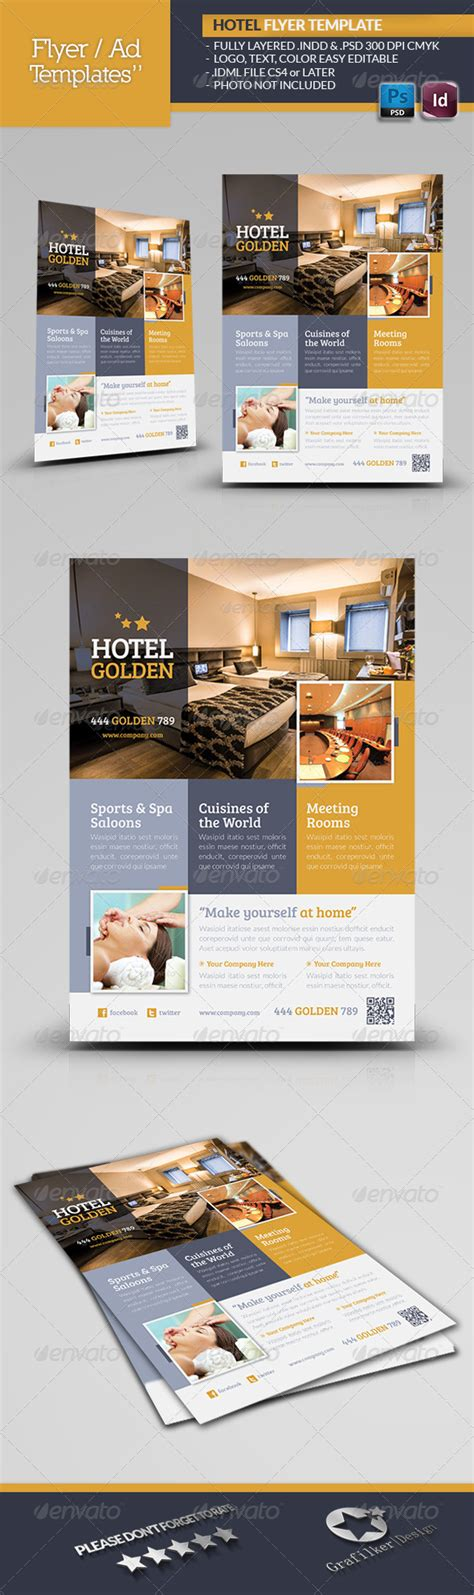 Hotel Golden Flyer Template 4965721 Stock Vector Design Template Hotel Flyer Templates Free